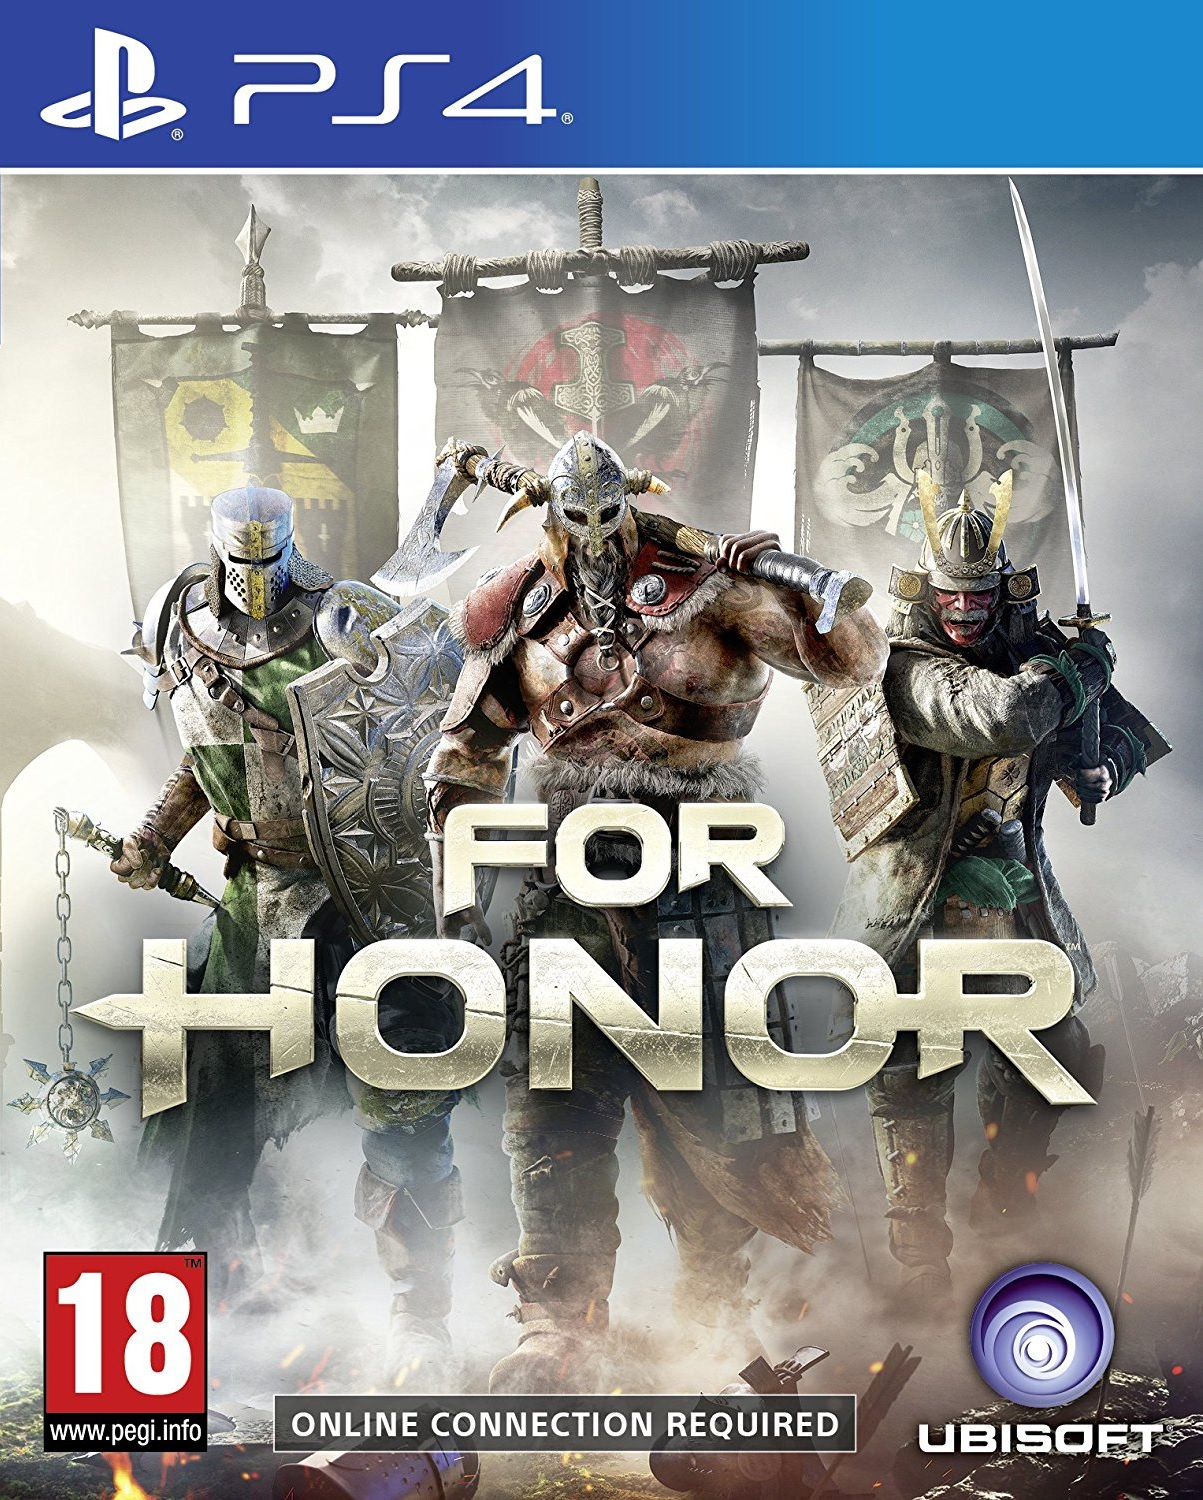 For Honor keeps the top